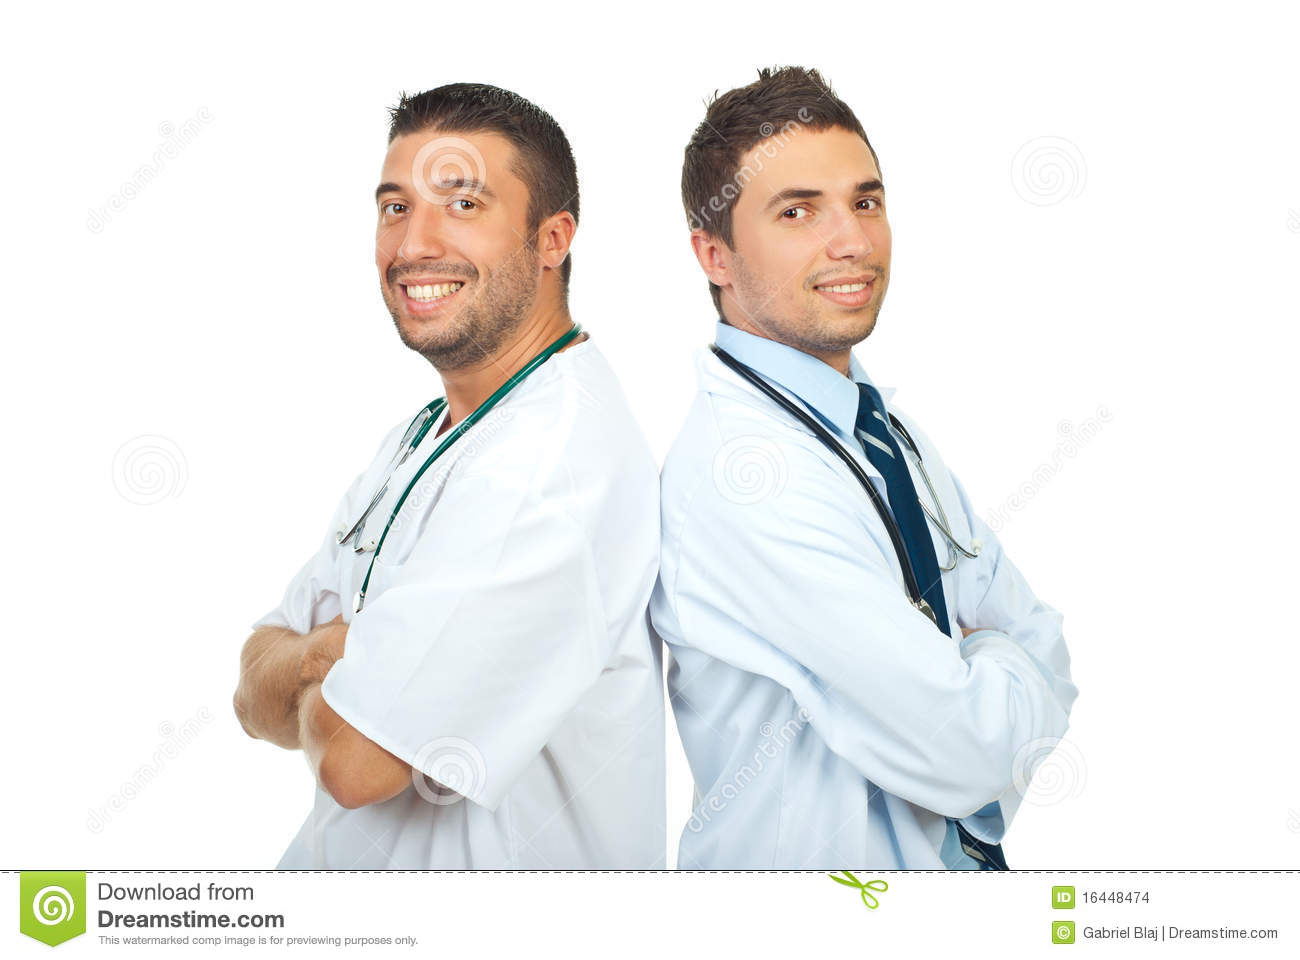 New study suggests women are 'better doctors than men' | Health ...